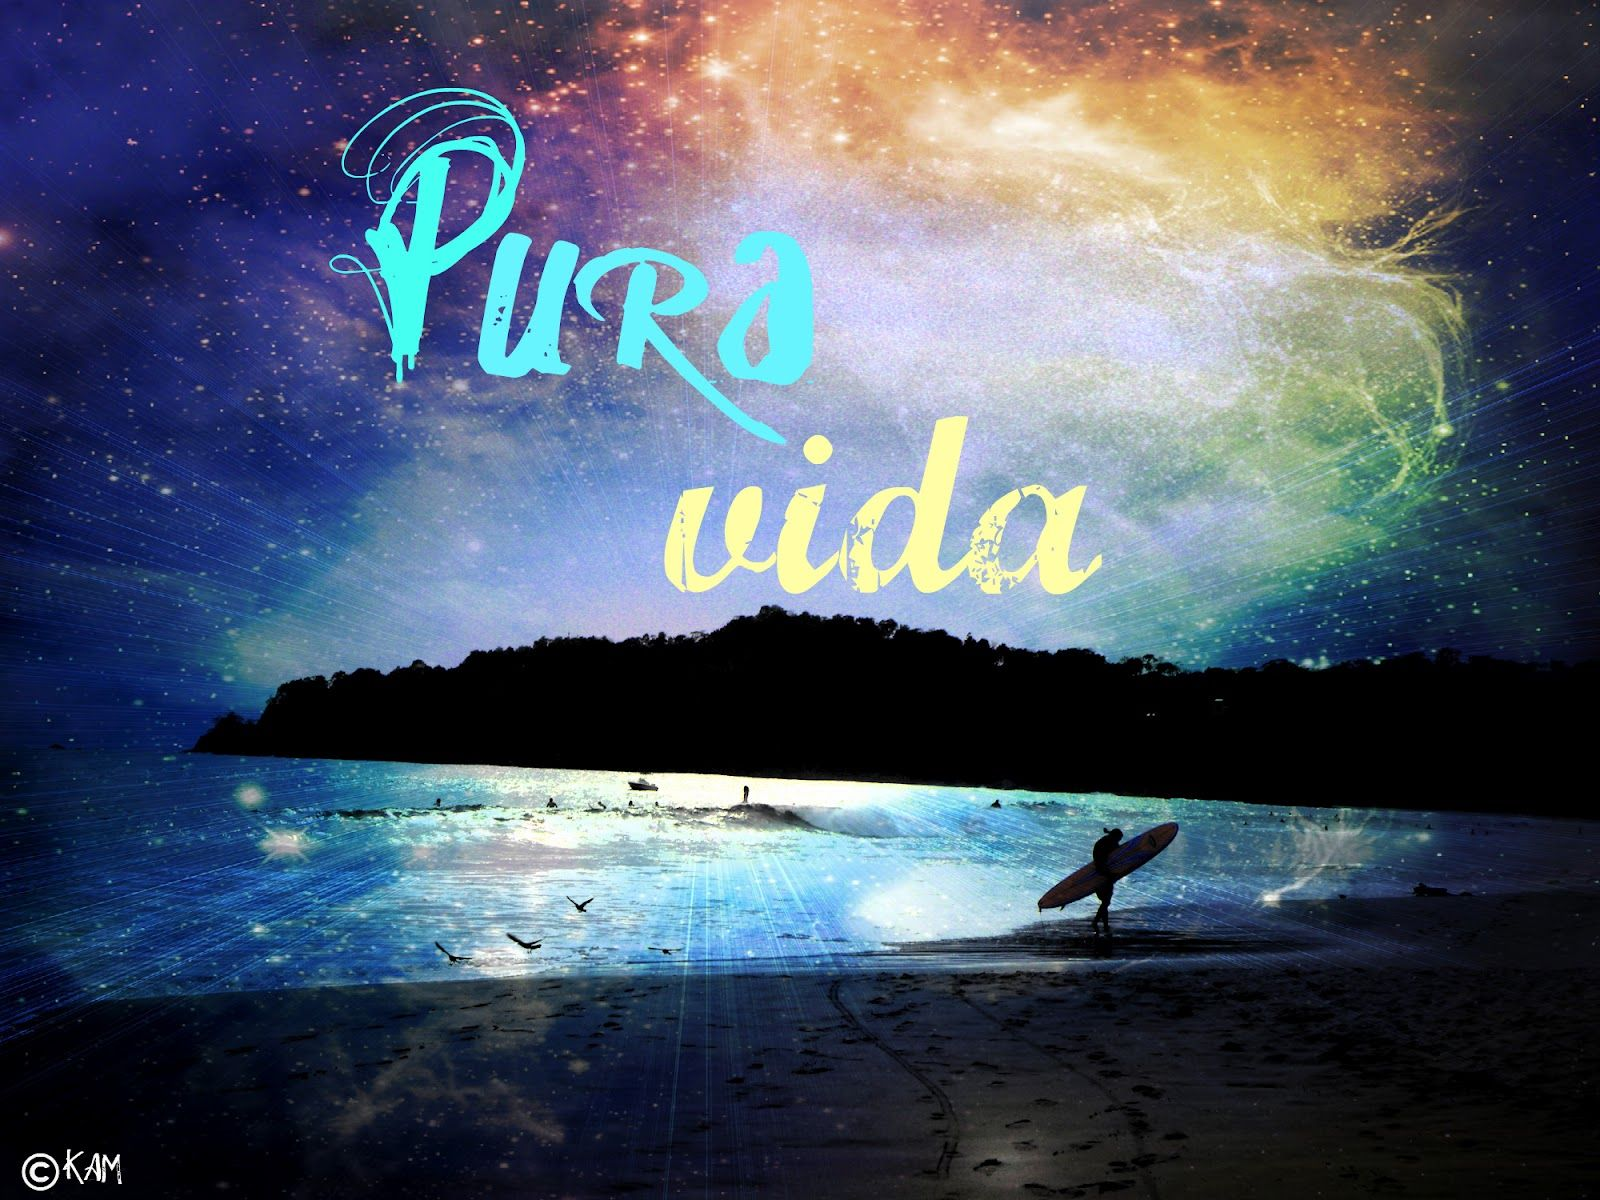 Pura Vida (pure life, the good life). I'd be sitting on this beach in Jaco, Costa Rica.